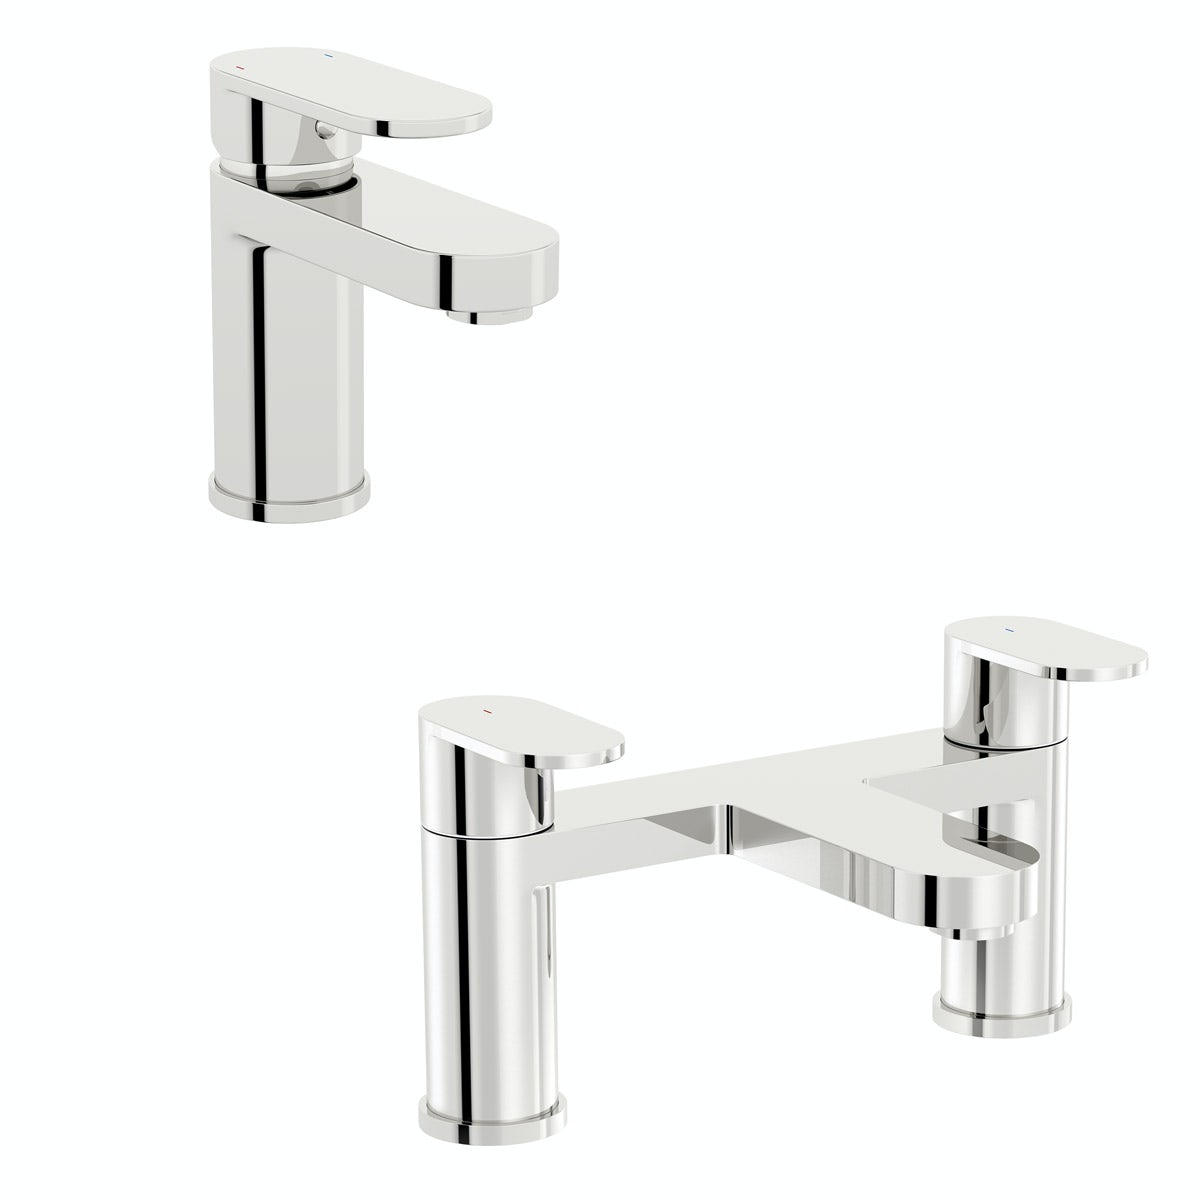 Kirke Curve basin and bath mixer tap pack